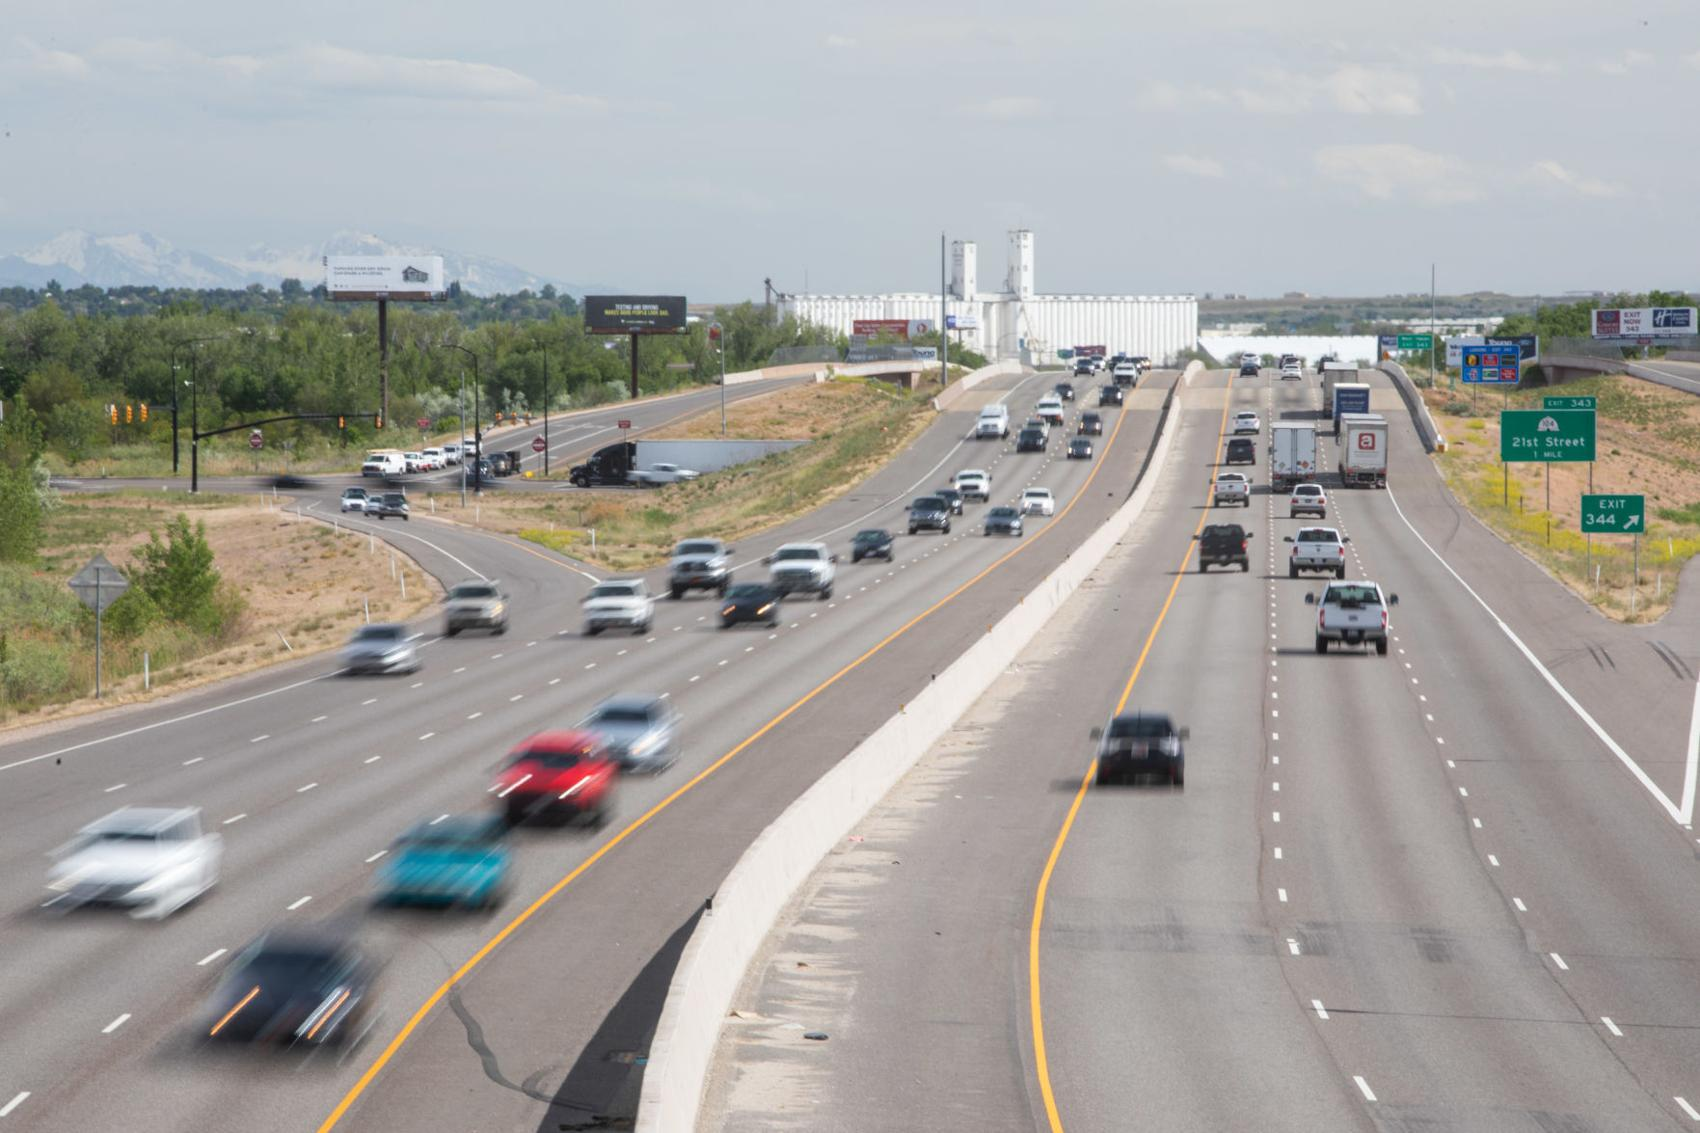 Transportation officials anticipating 'great localization' after COVID-19